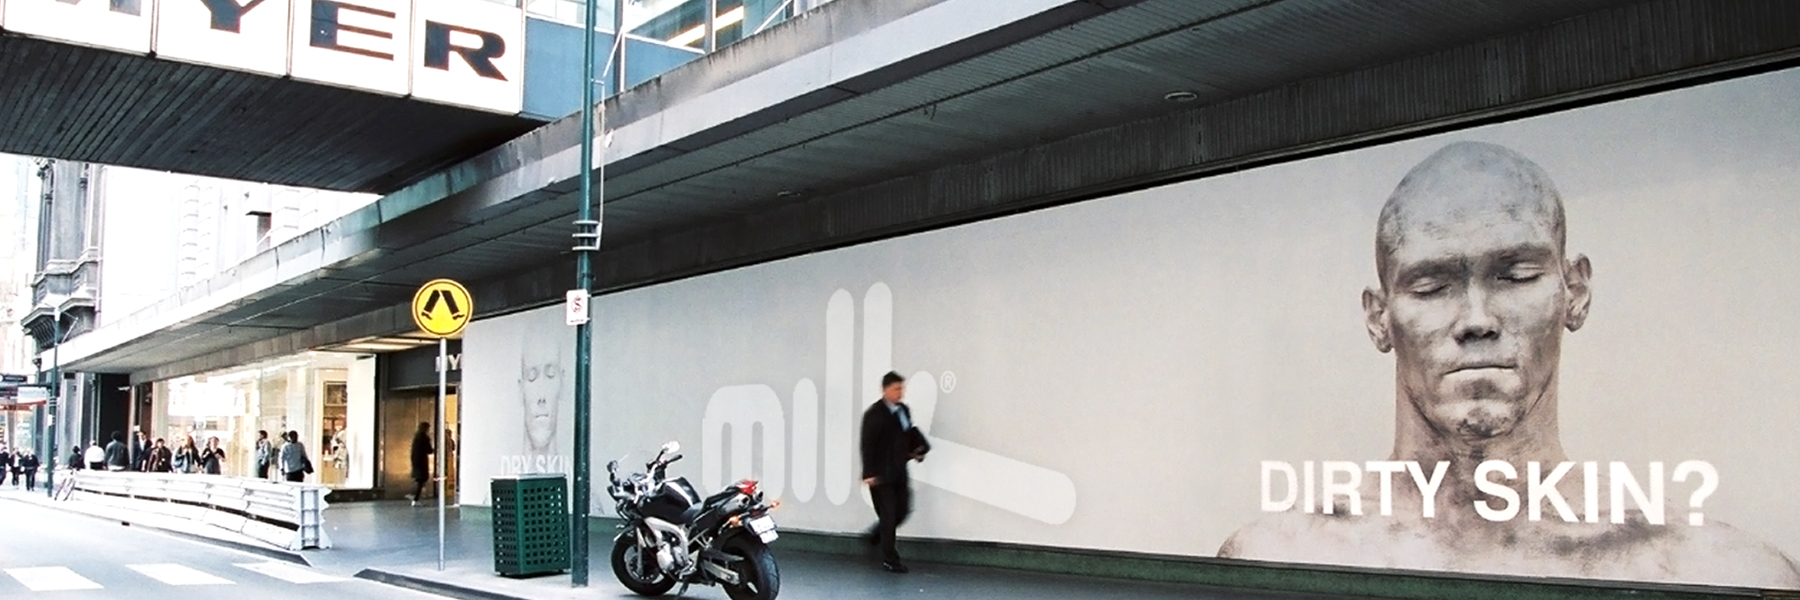 Michael Klim - Milk Branding Advertising Outdoor